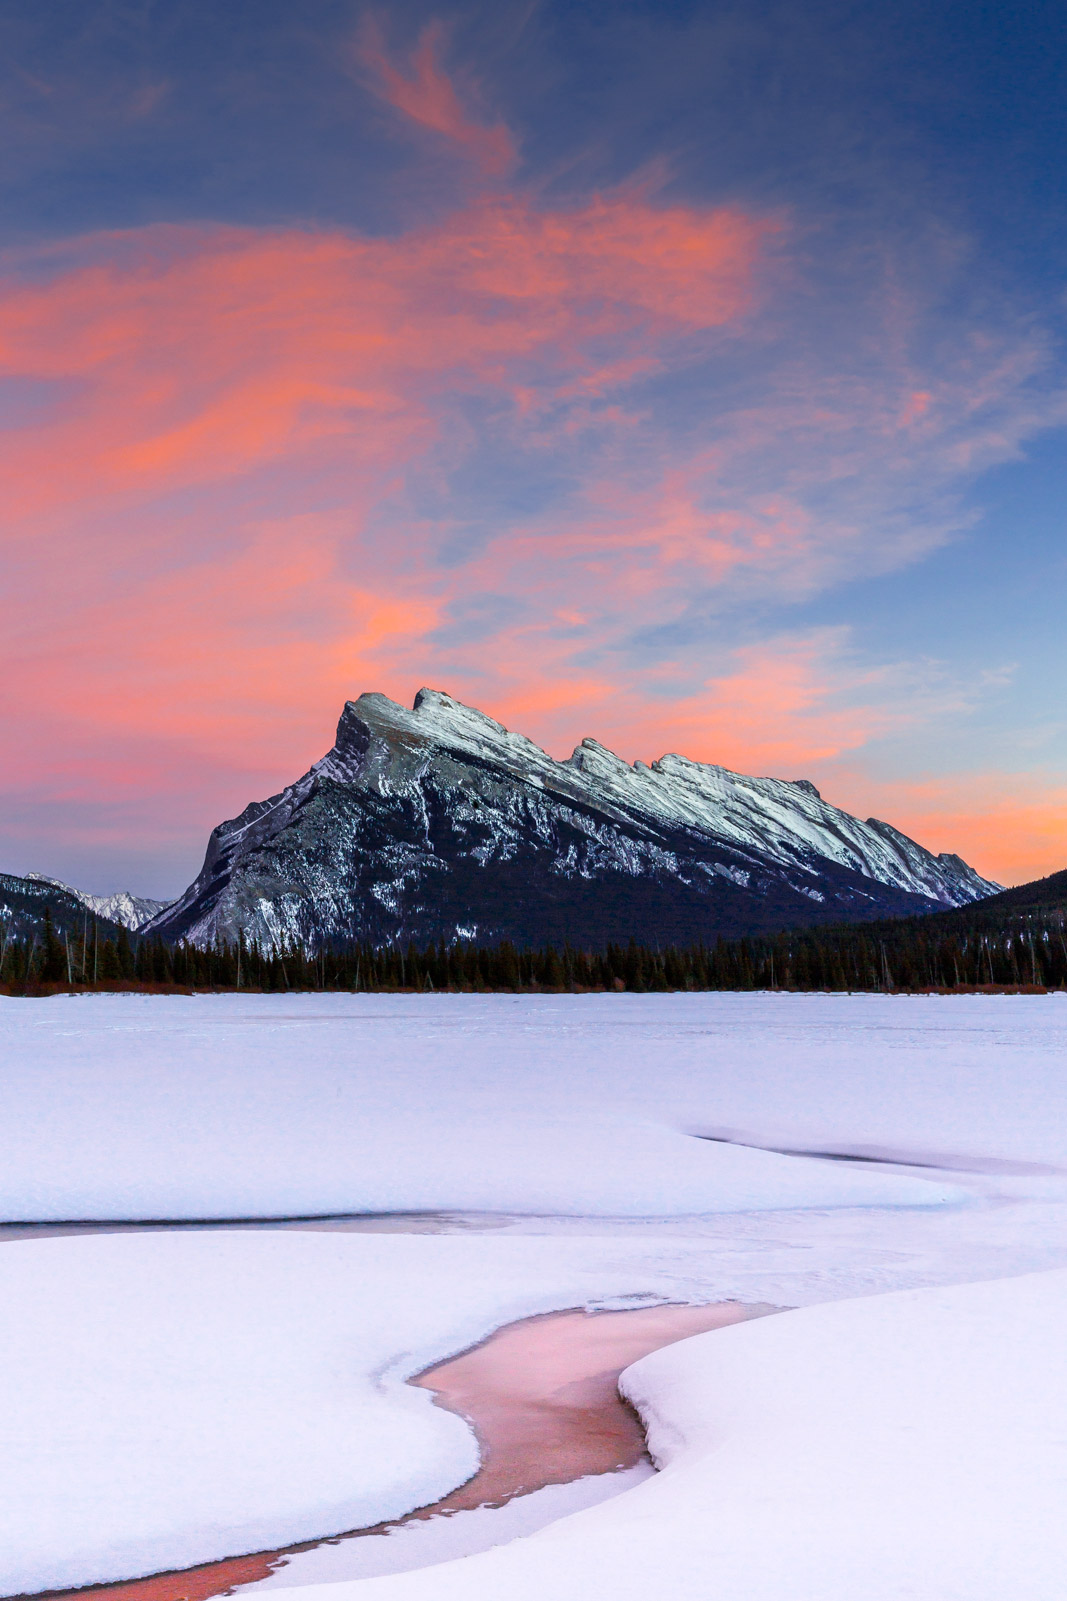 Aberta, Canada, , Banff, Mount Rundle, Sunset, Mountain, Snow